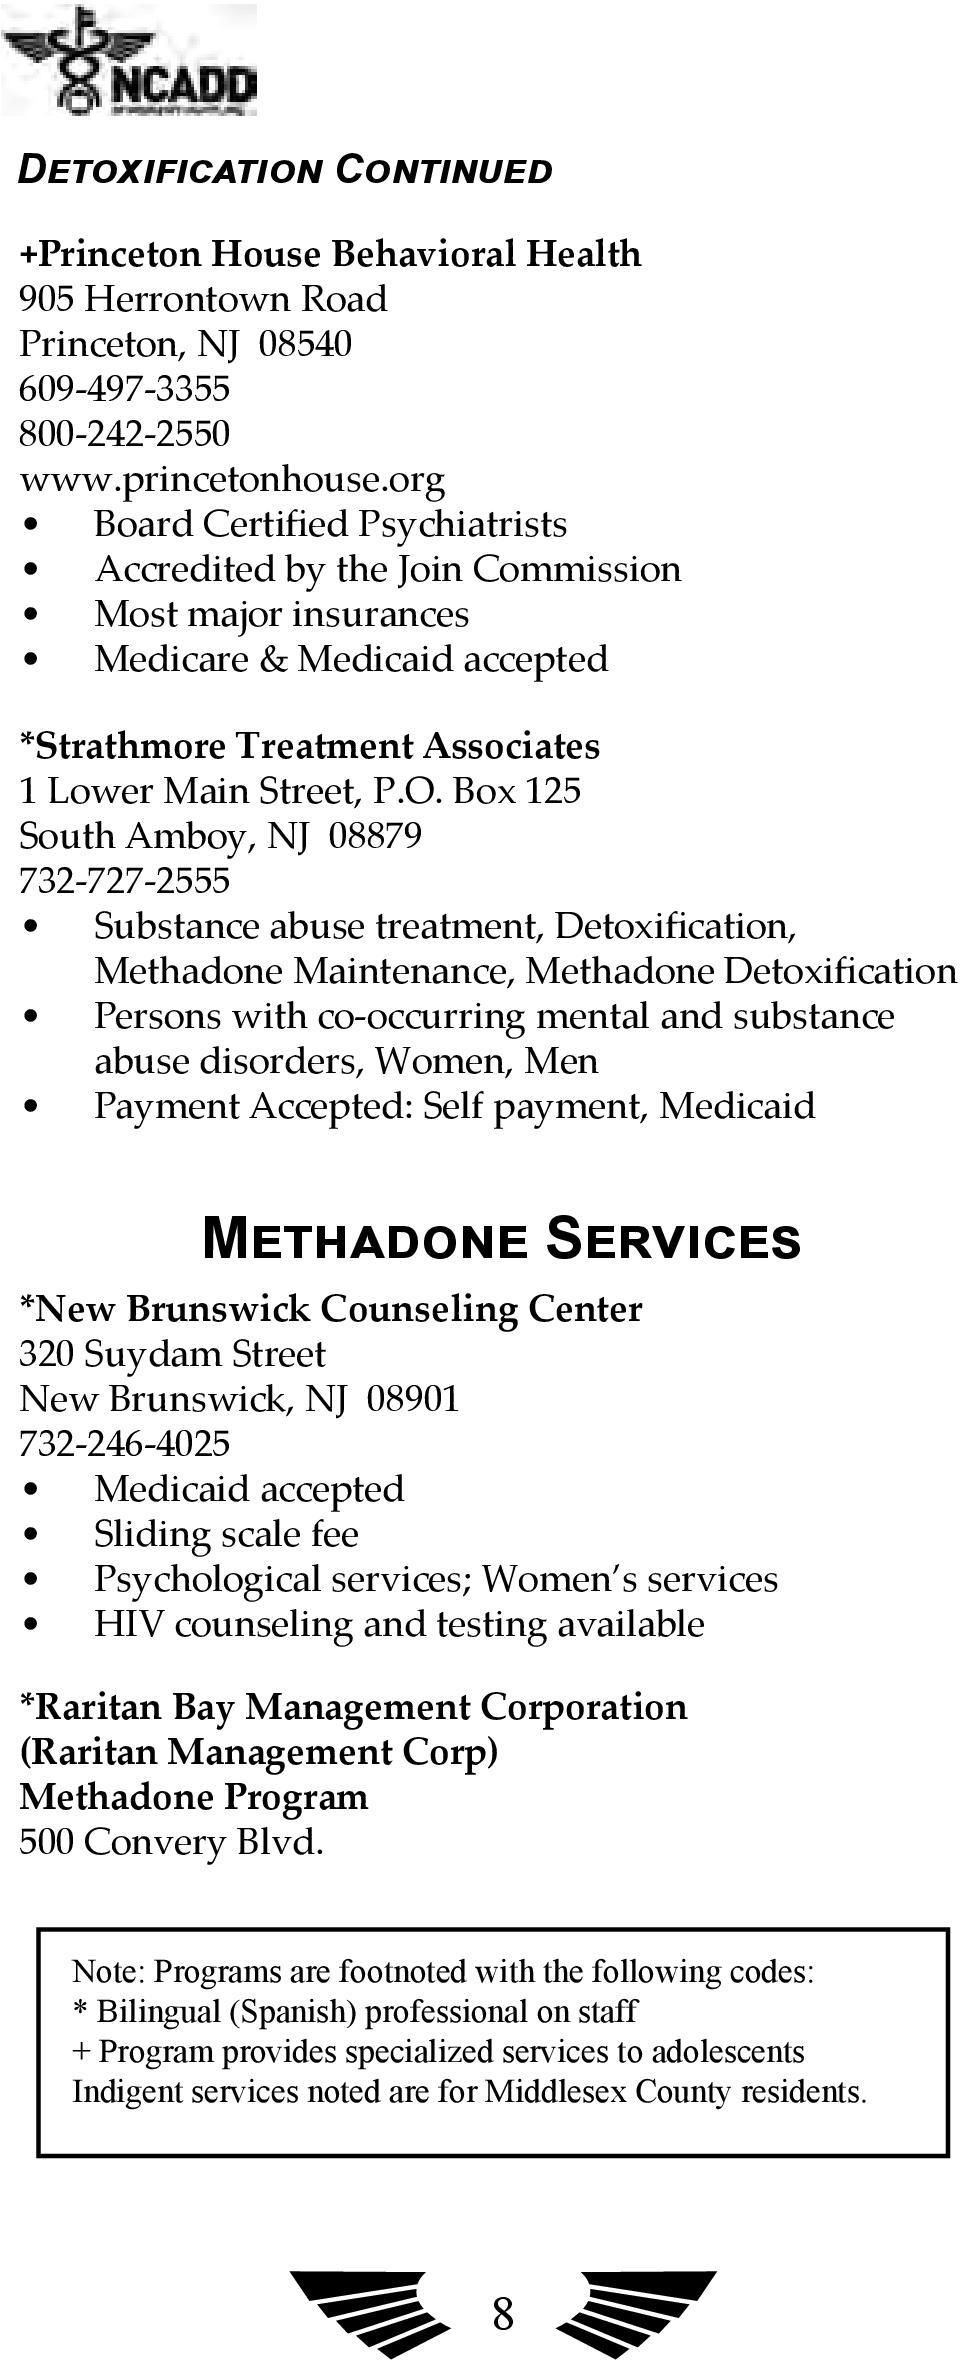 Box 125 South Amboy, NJ 08879 732-727-2555 Substance abuse treatment, Detoxification, Methadone Maintenance, Methadone Detoxification Persons with co-occurring mental and substance abuse disorders,